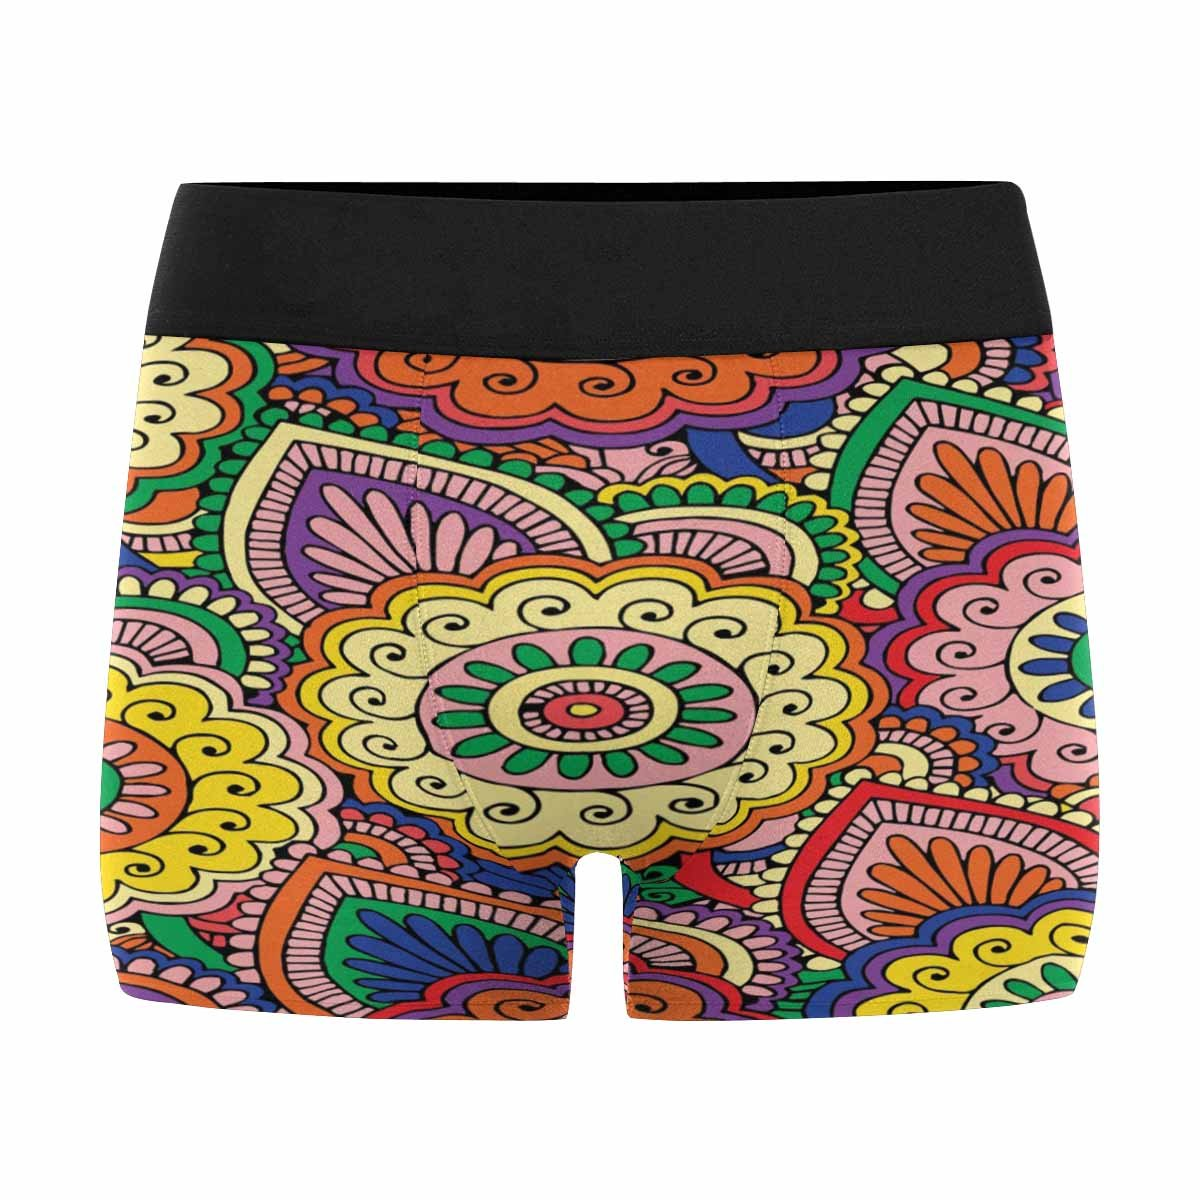 INTERESTPRINT Custom Mens All-Over Print Boxer Briefs Abstract Floral Pattern, XS-3XL